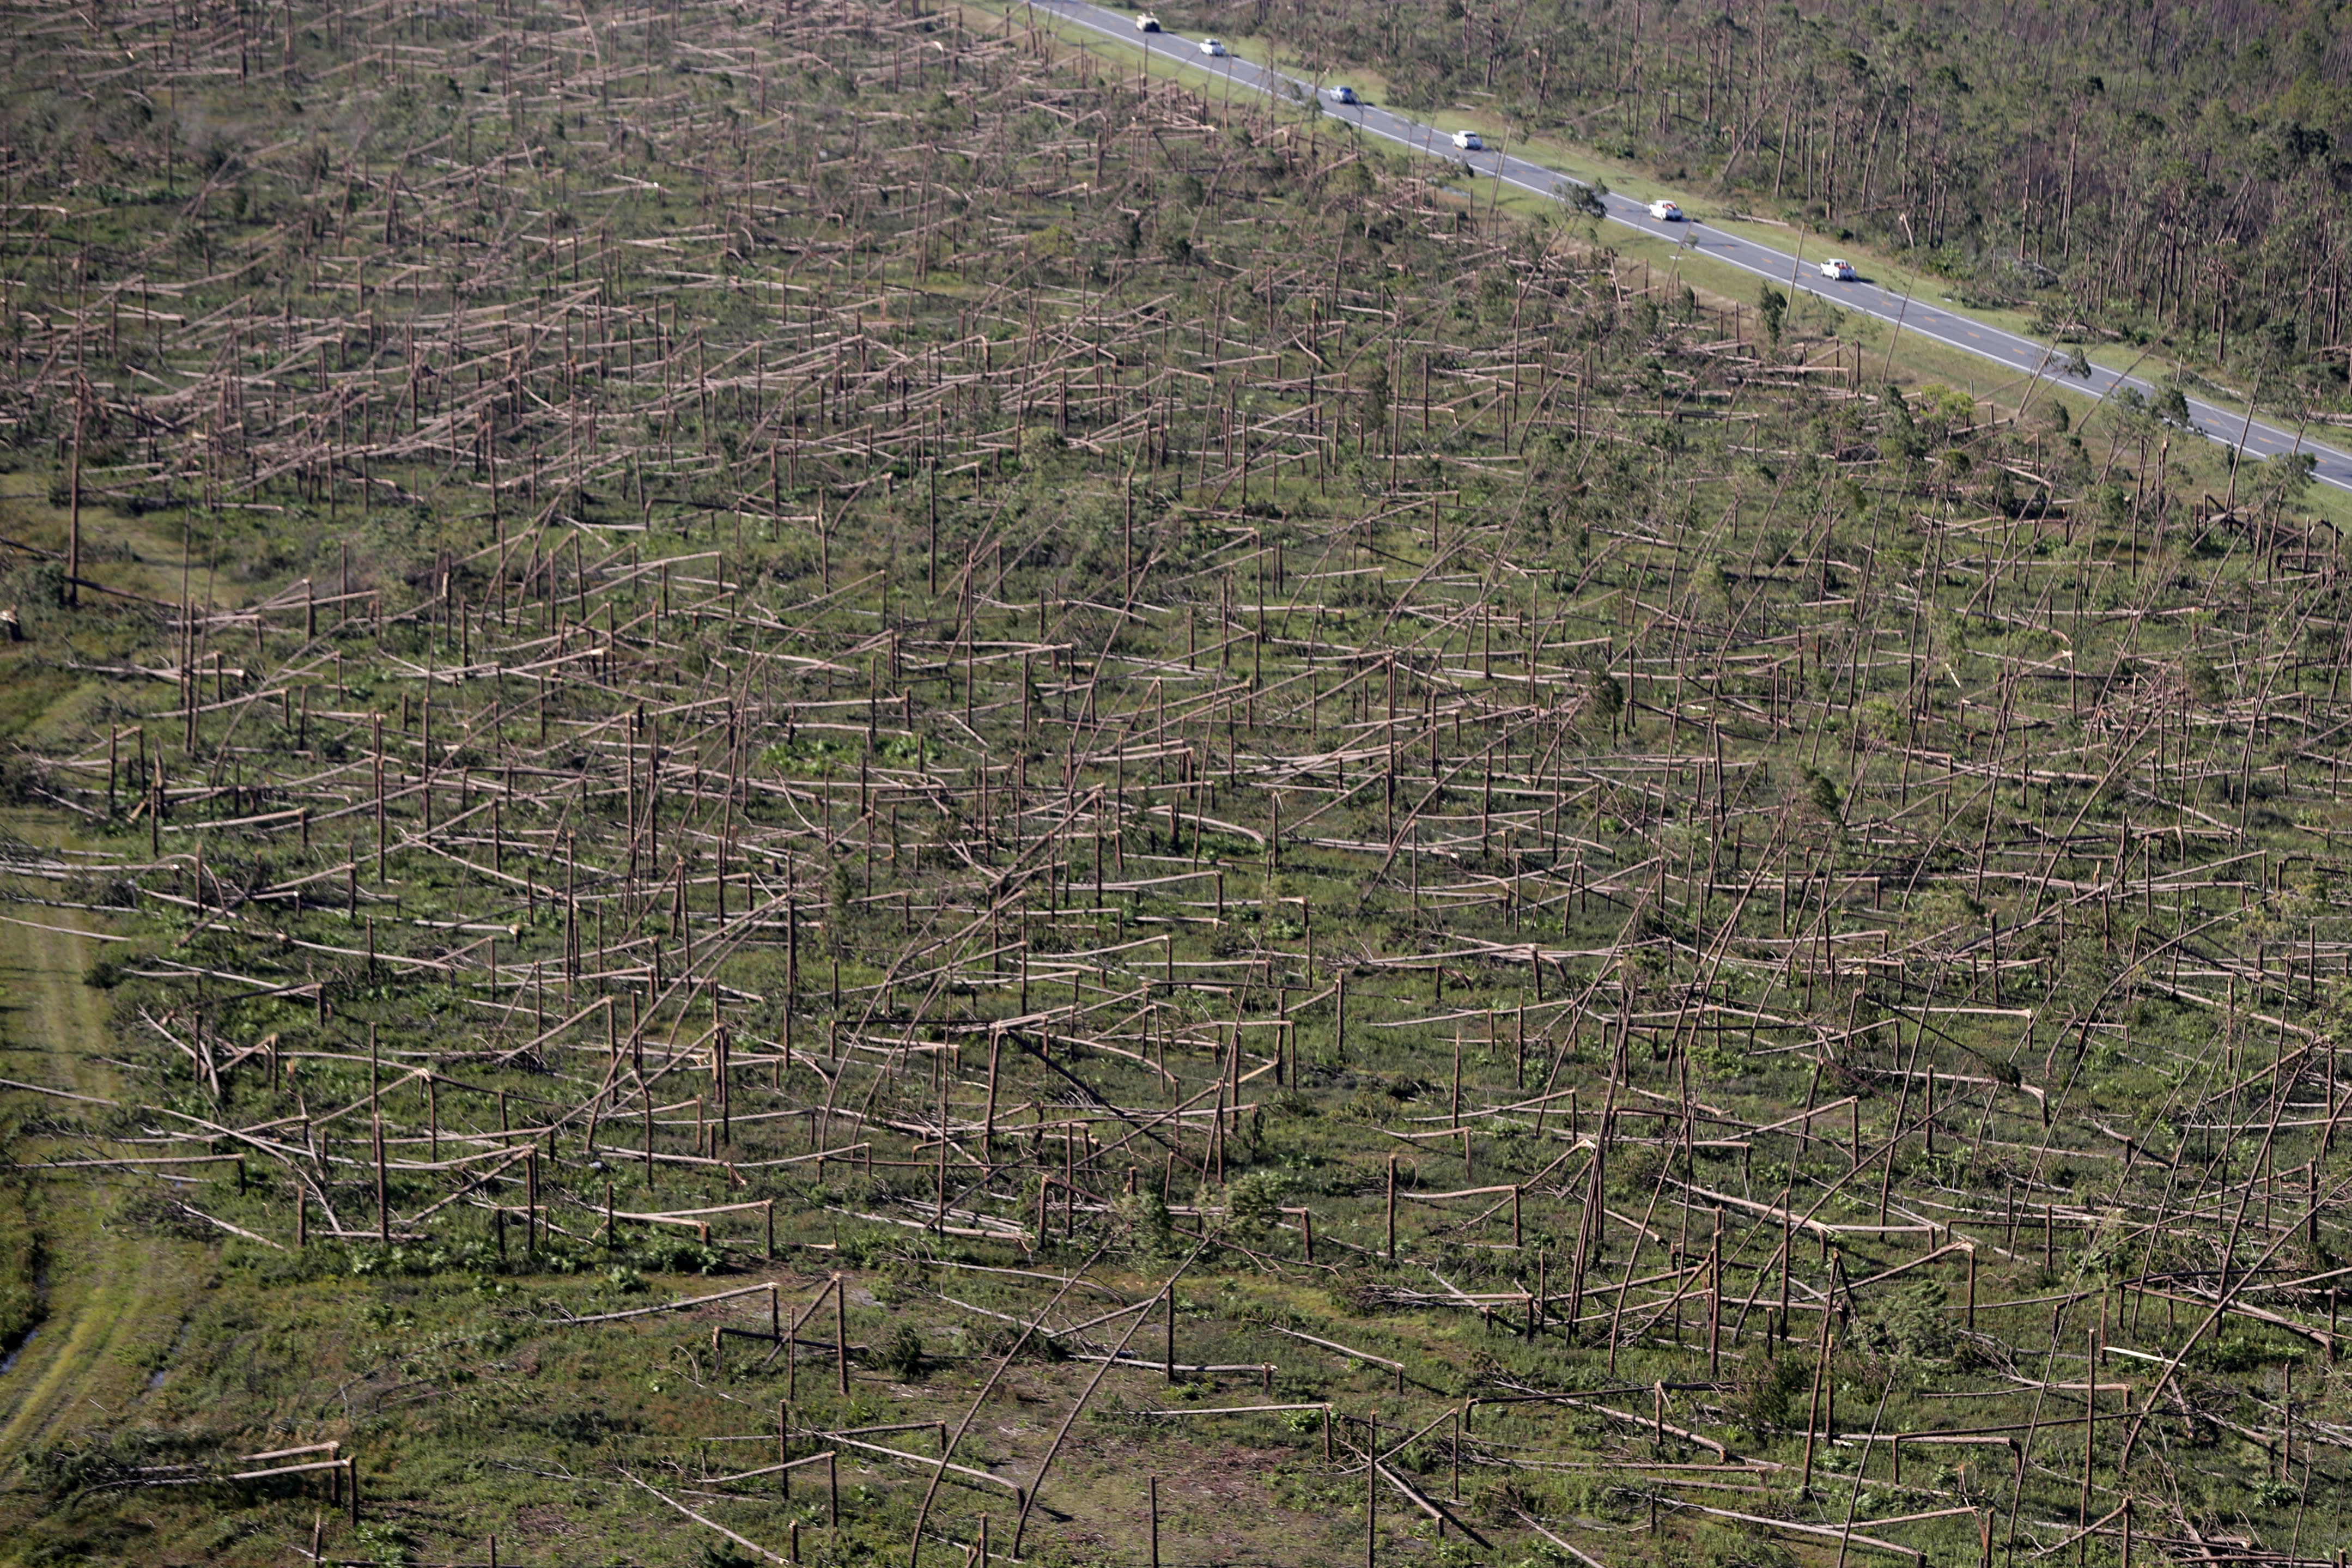 FILE - In this Oct. 12, 2018, file photo, downed trees are seen from the air near Tyndall Air Force Base in the aftermath of Hurricane Michael near Mexico Beach, Fla. The federal government is sending $800 million in aid to farmers in four southern states that were most devastated last year by hurricanes Michael and Florence. Nearly half of that money will benefit Florida timber farmers, who suffered catastrophic losses when Hurricane Michael came ashore in October 2018 and destroyed 2.8 million acres of timberland. (AP Photo/Gerald Herbert, File)